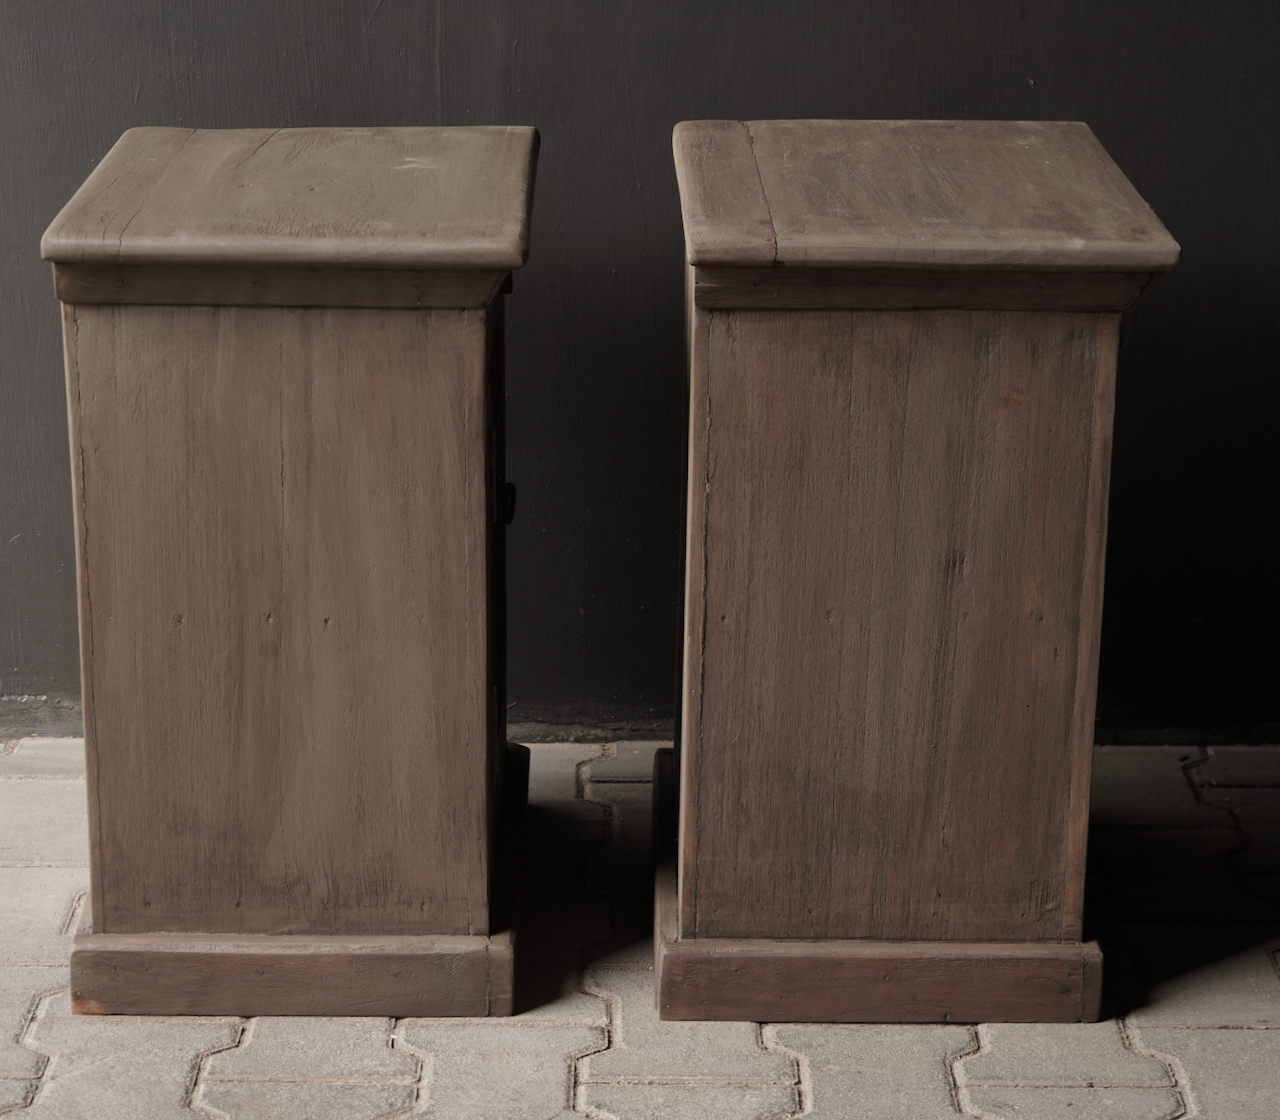 Old Mud Wash wooden cupboards or bedside tables-6